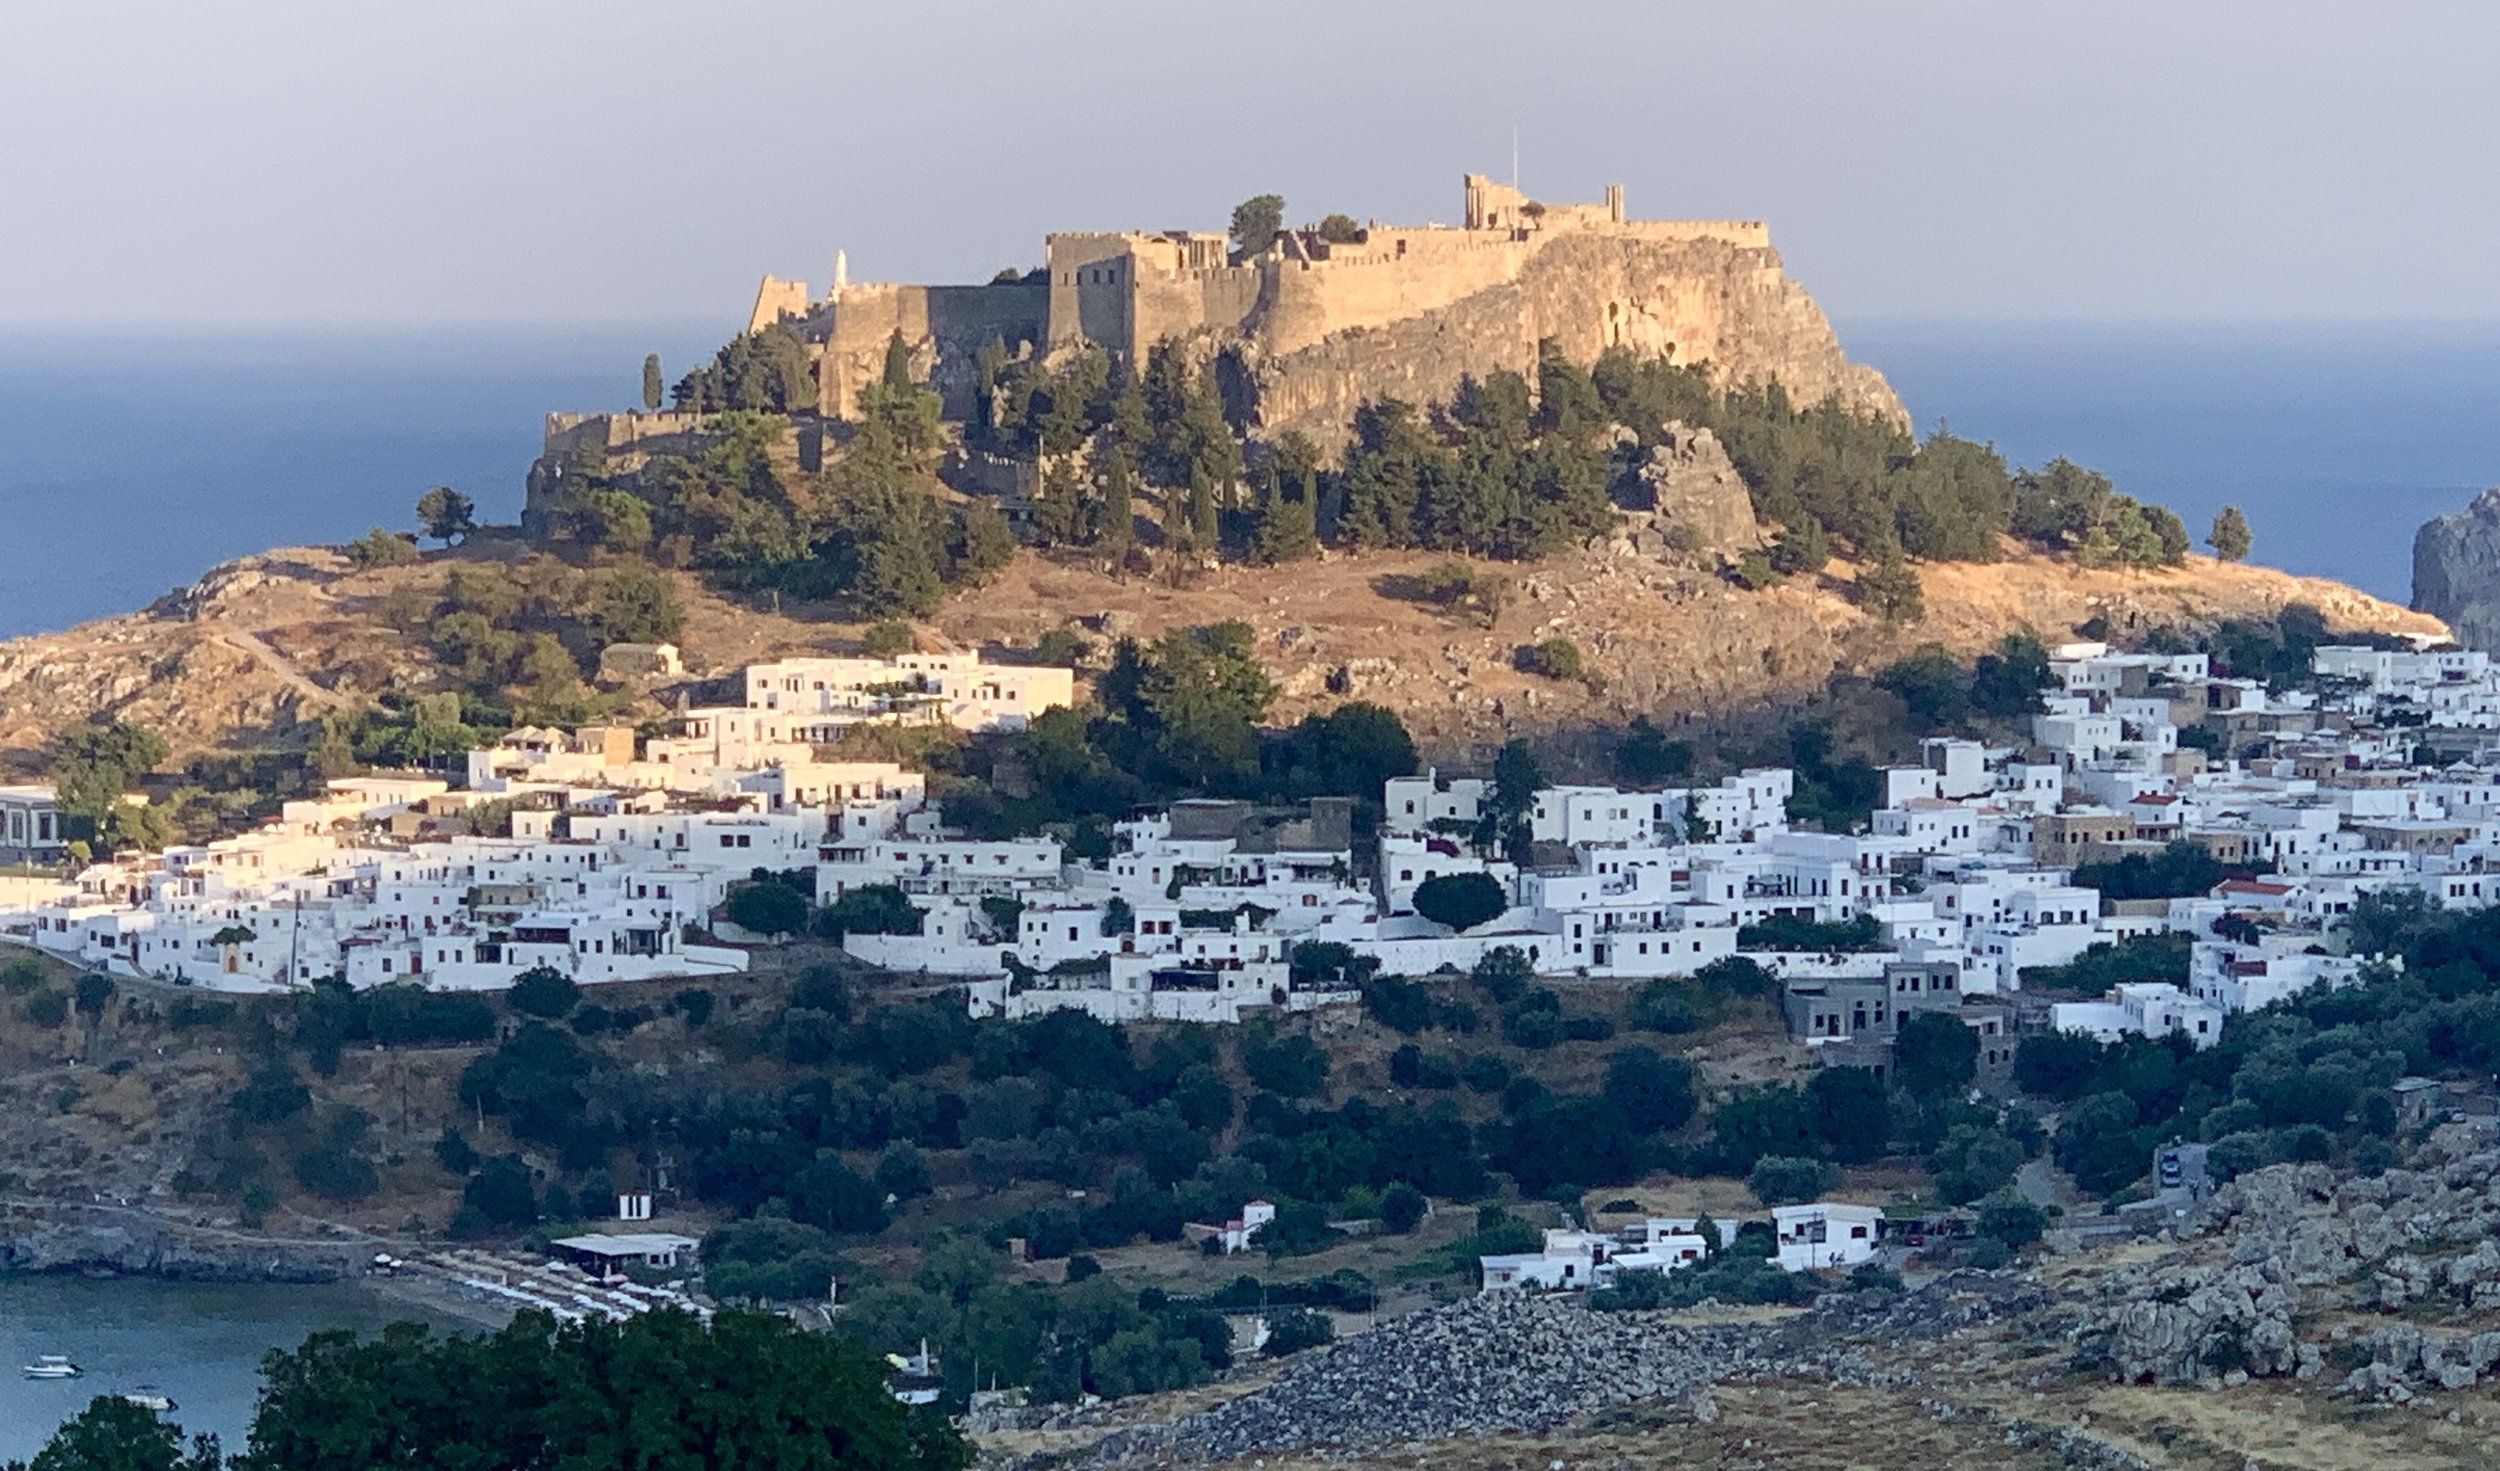 Lindos, Rhodes, 20th July 2019